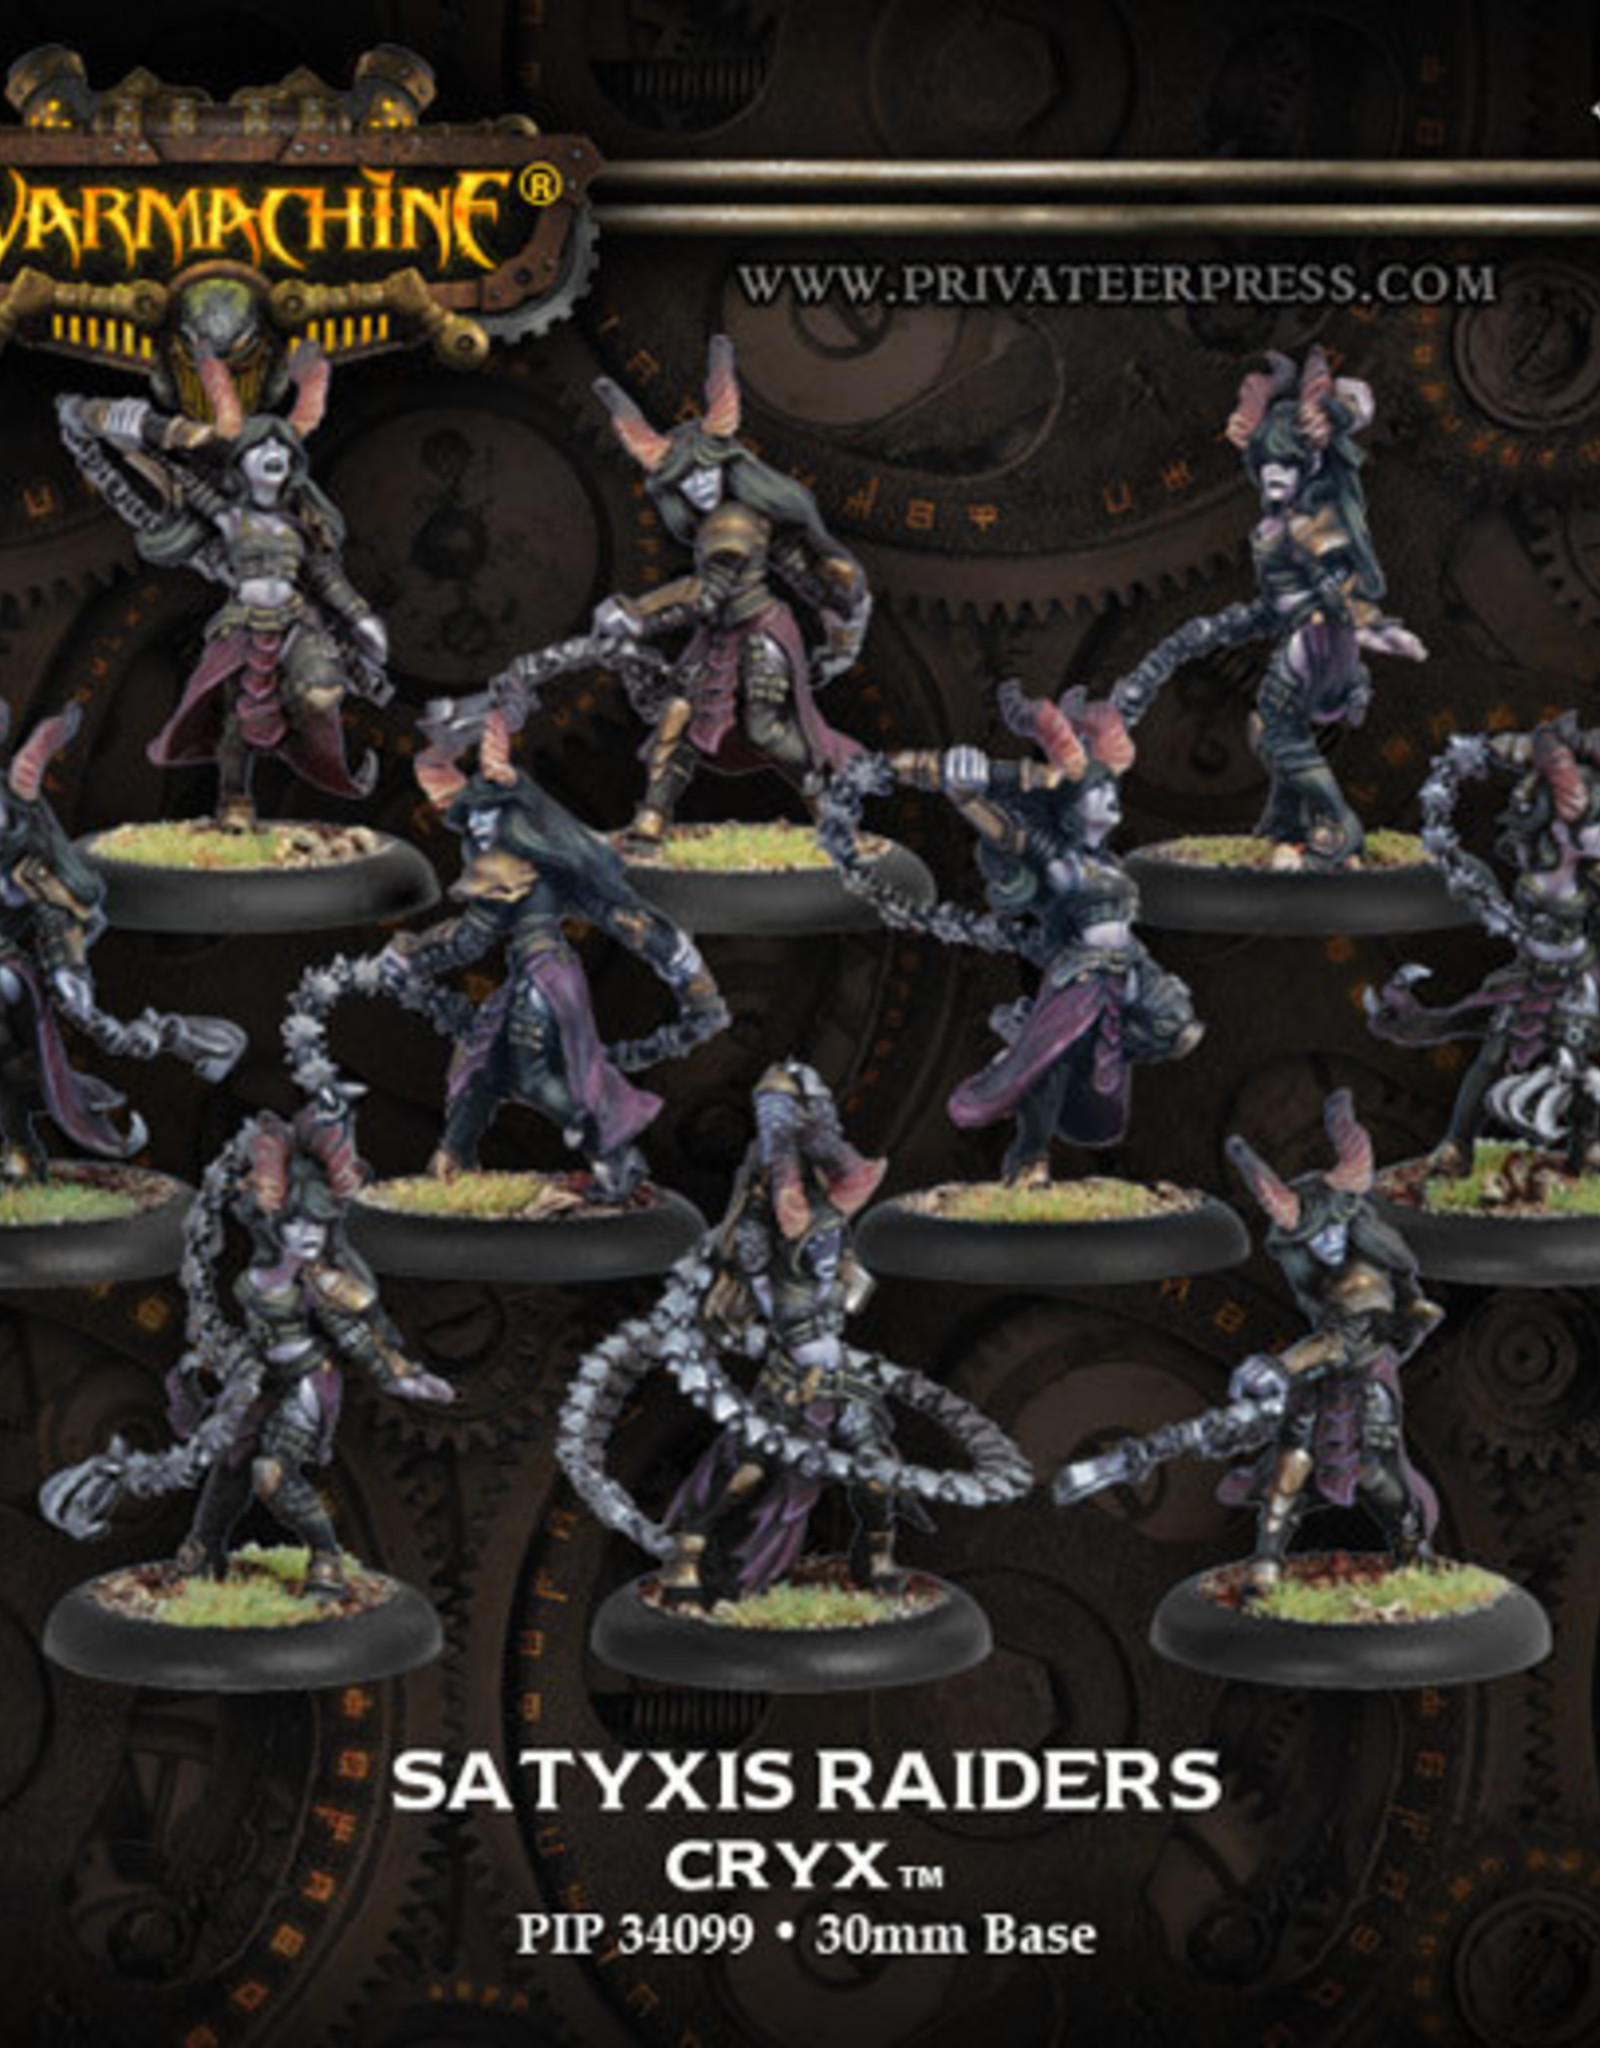 Warmachine Cryx - Satyxis Raiders